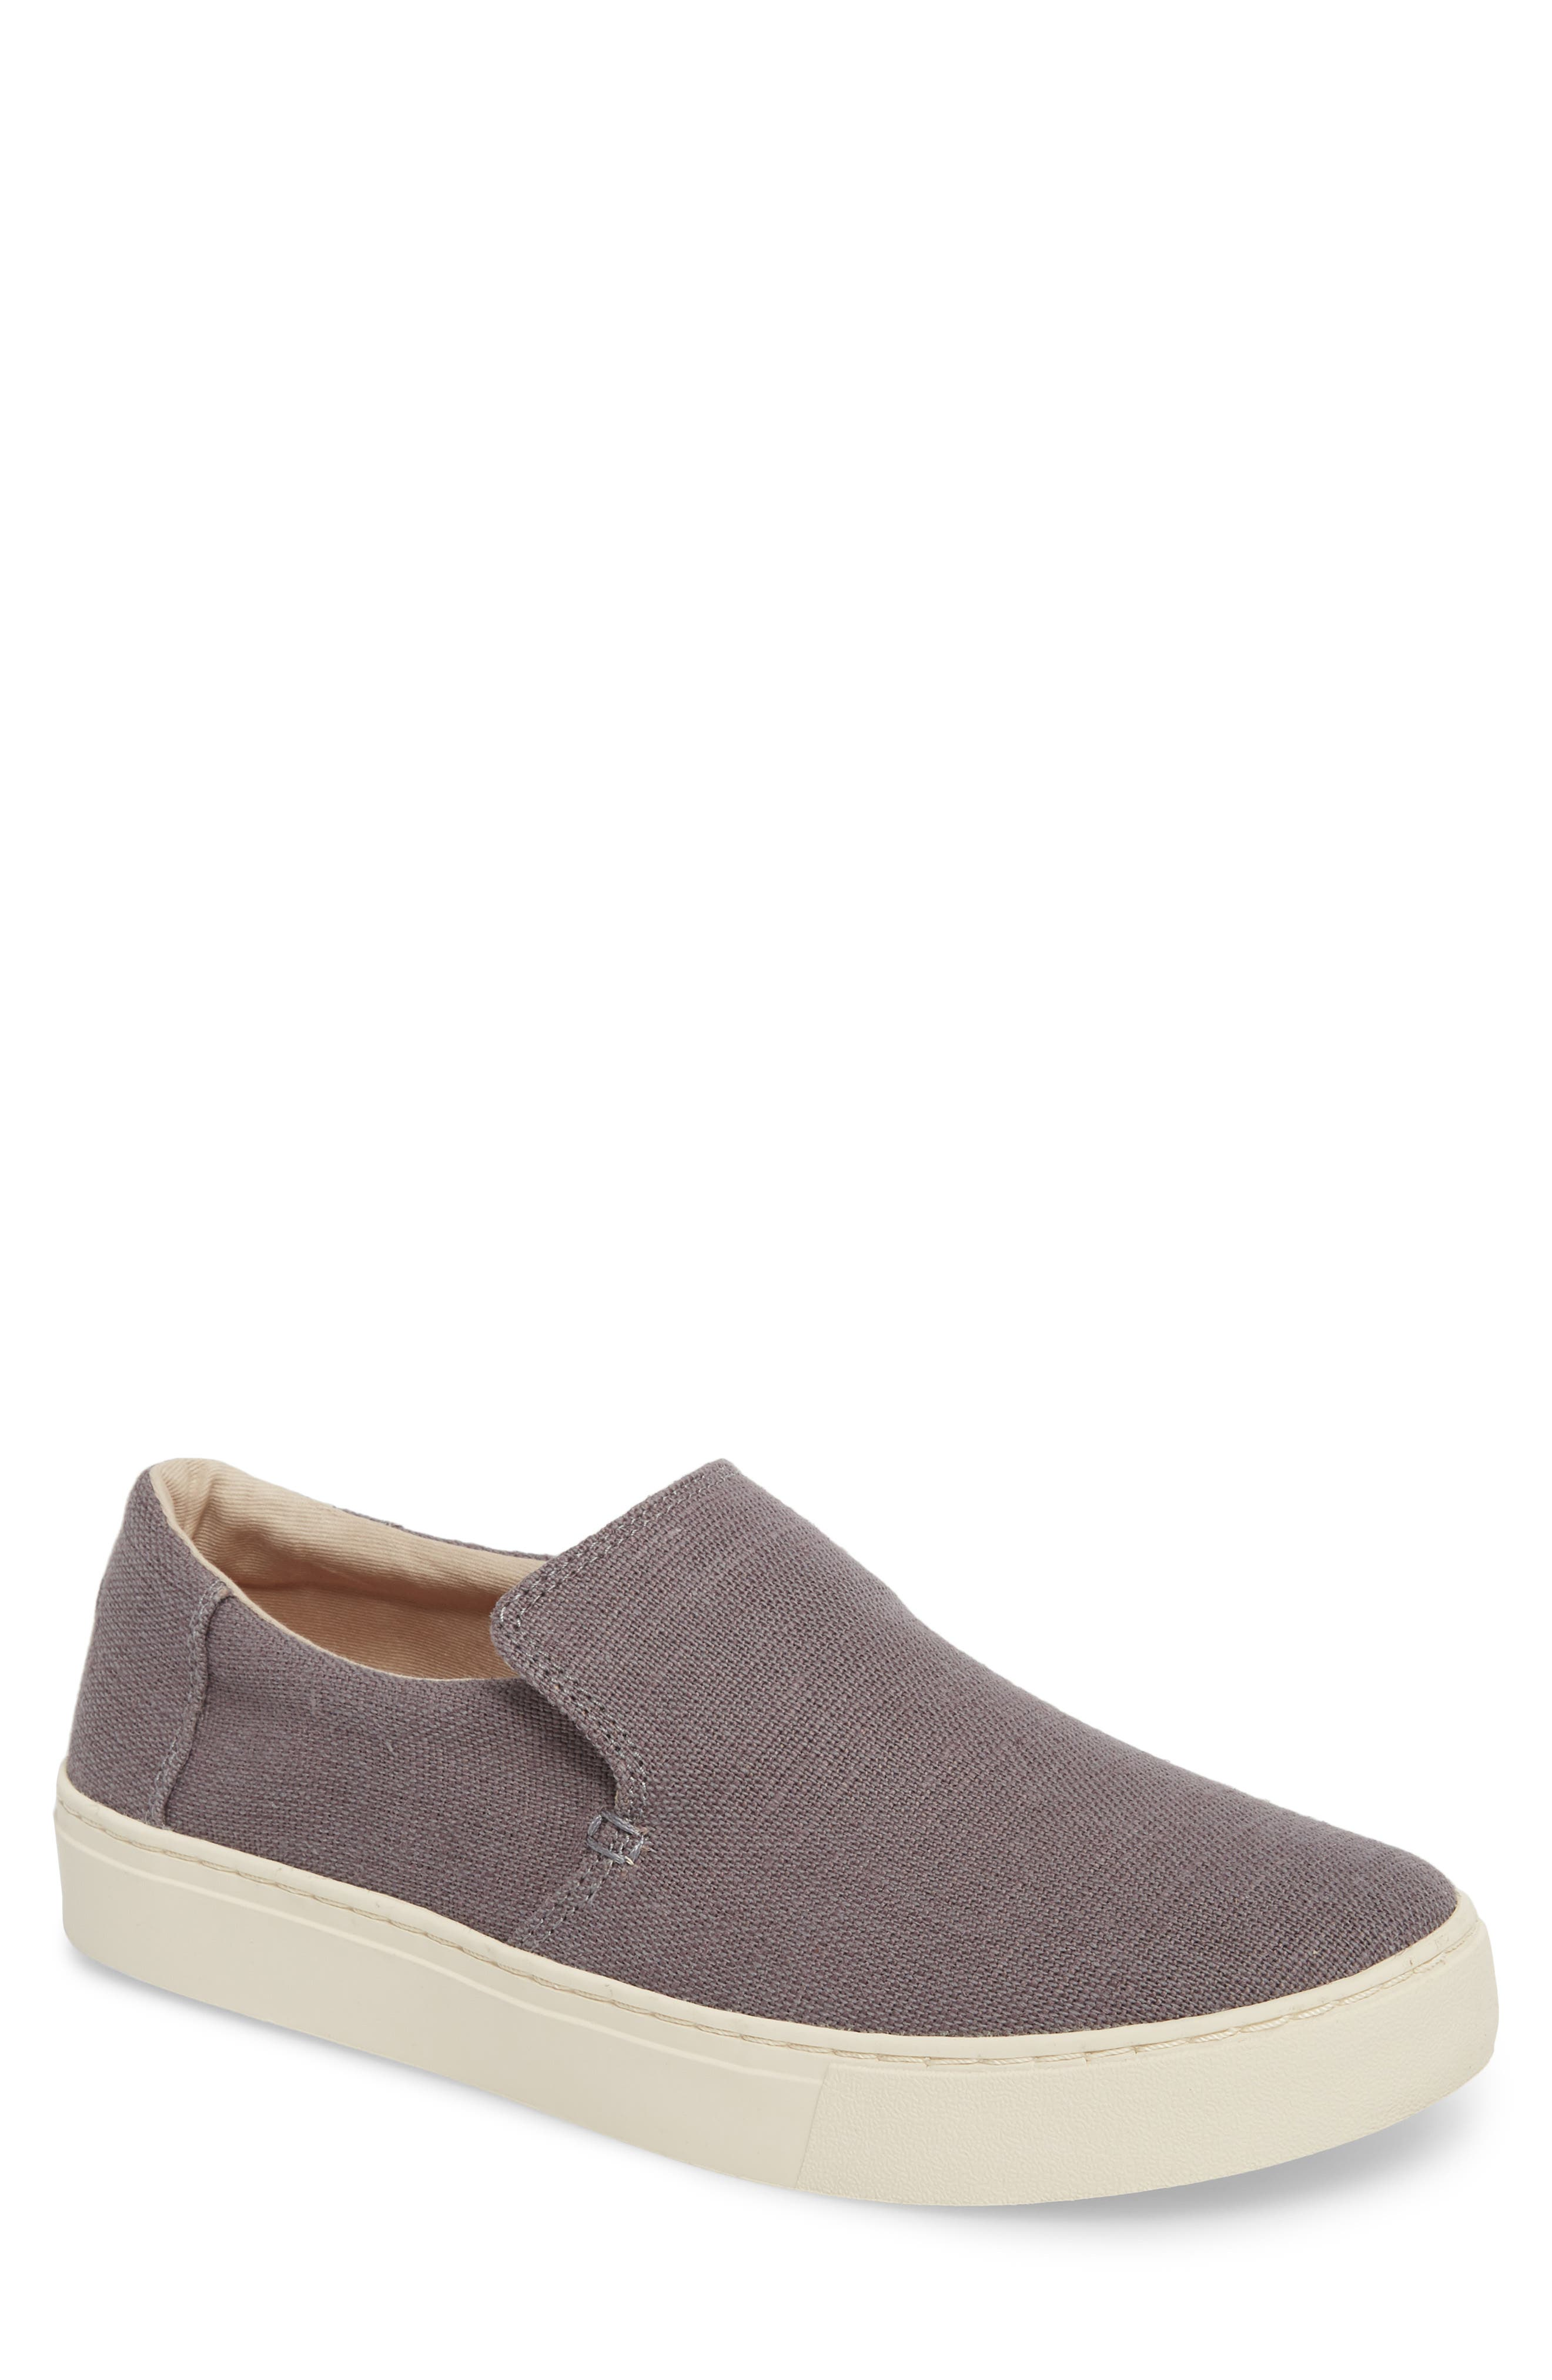 Loma Slip-On Sneaker,                         Main,                         color, SHADE HERITAGE CANVAS